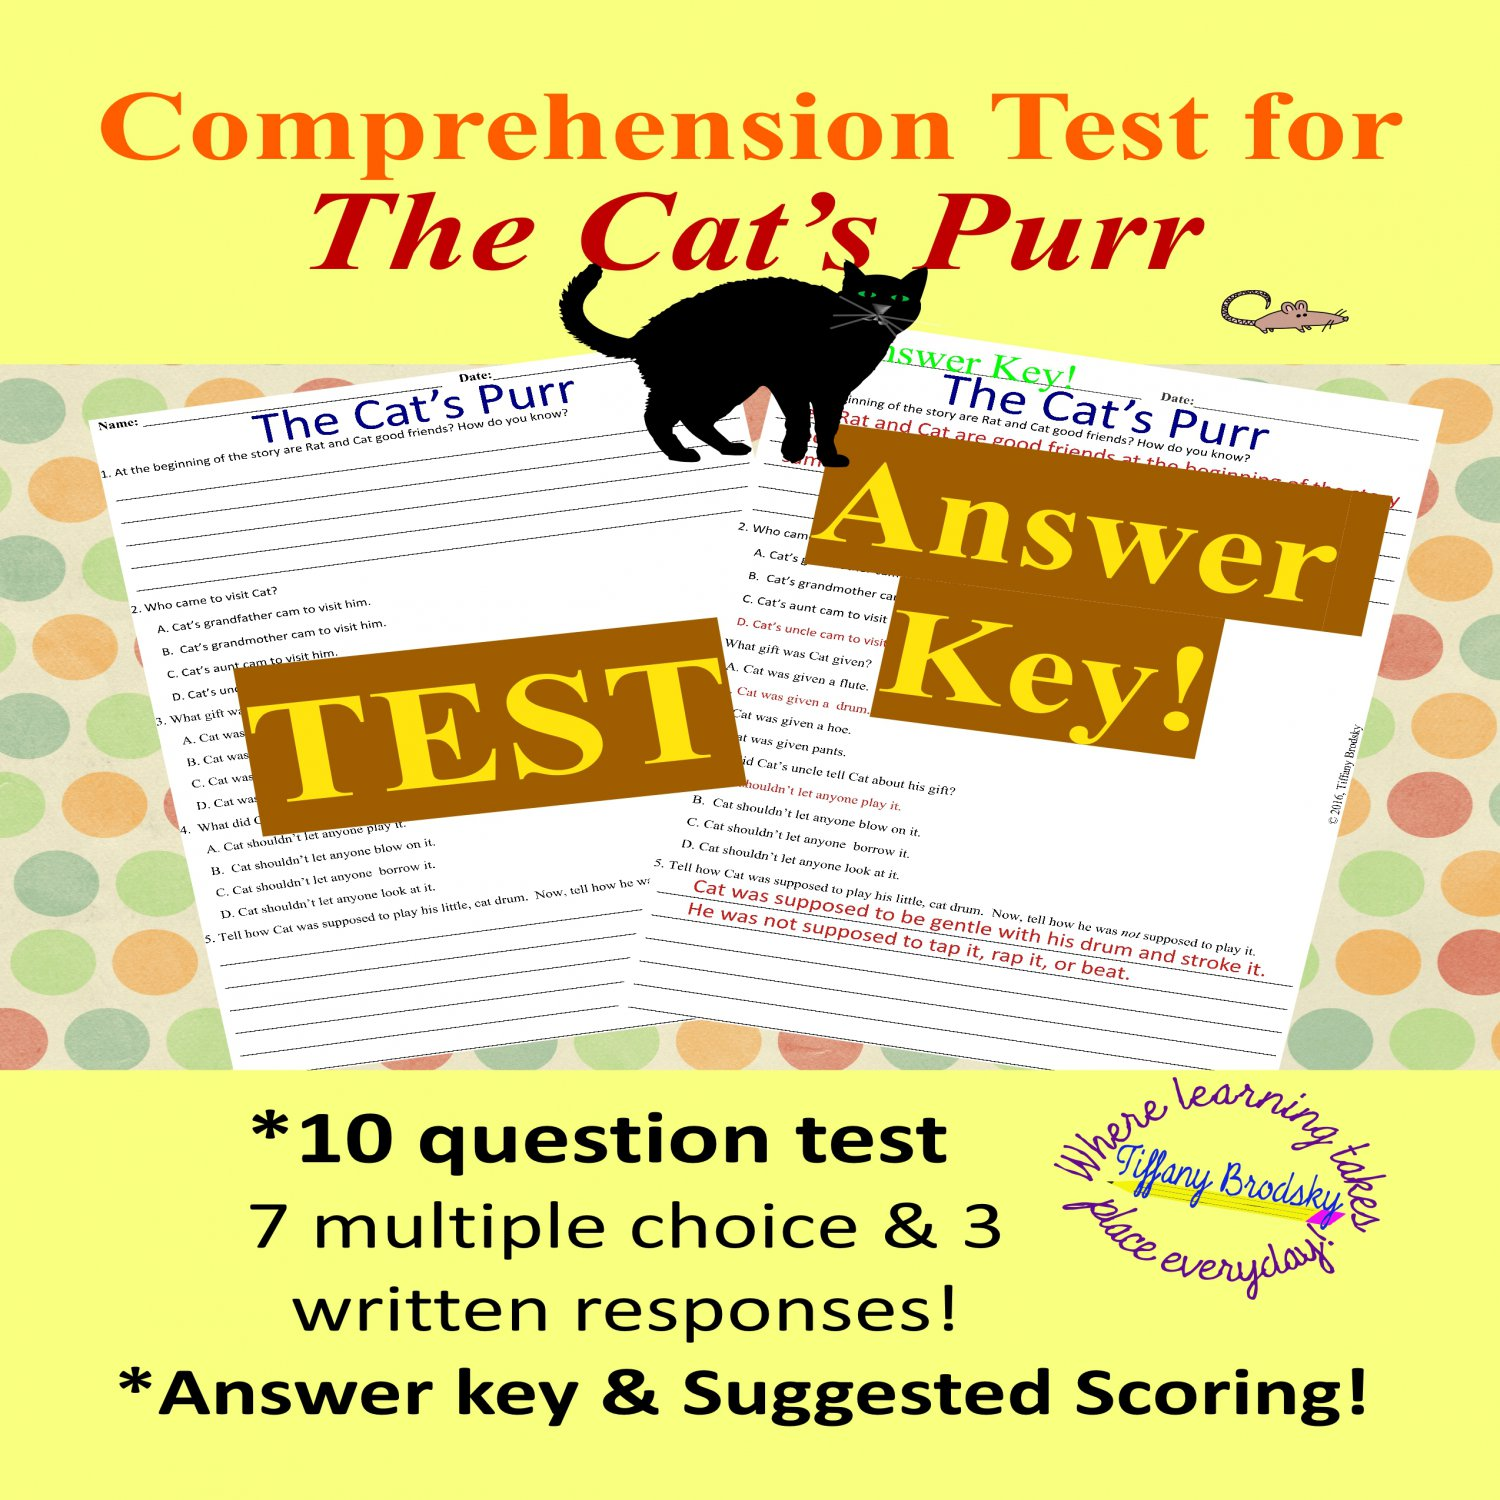 The Cat's Purr Comprehension Test and Answer Key